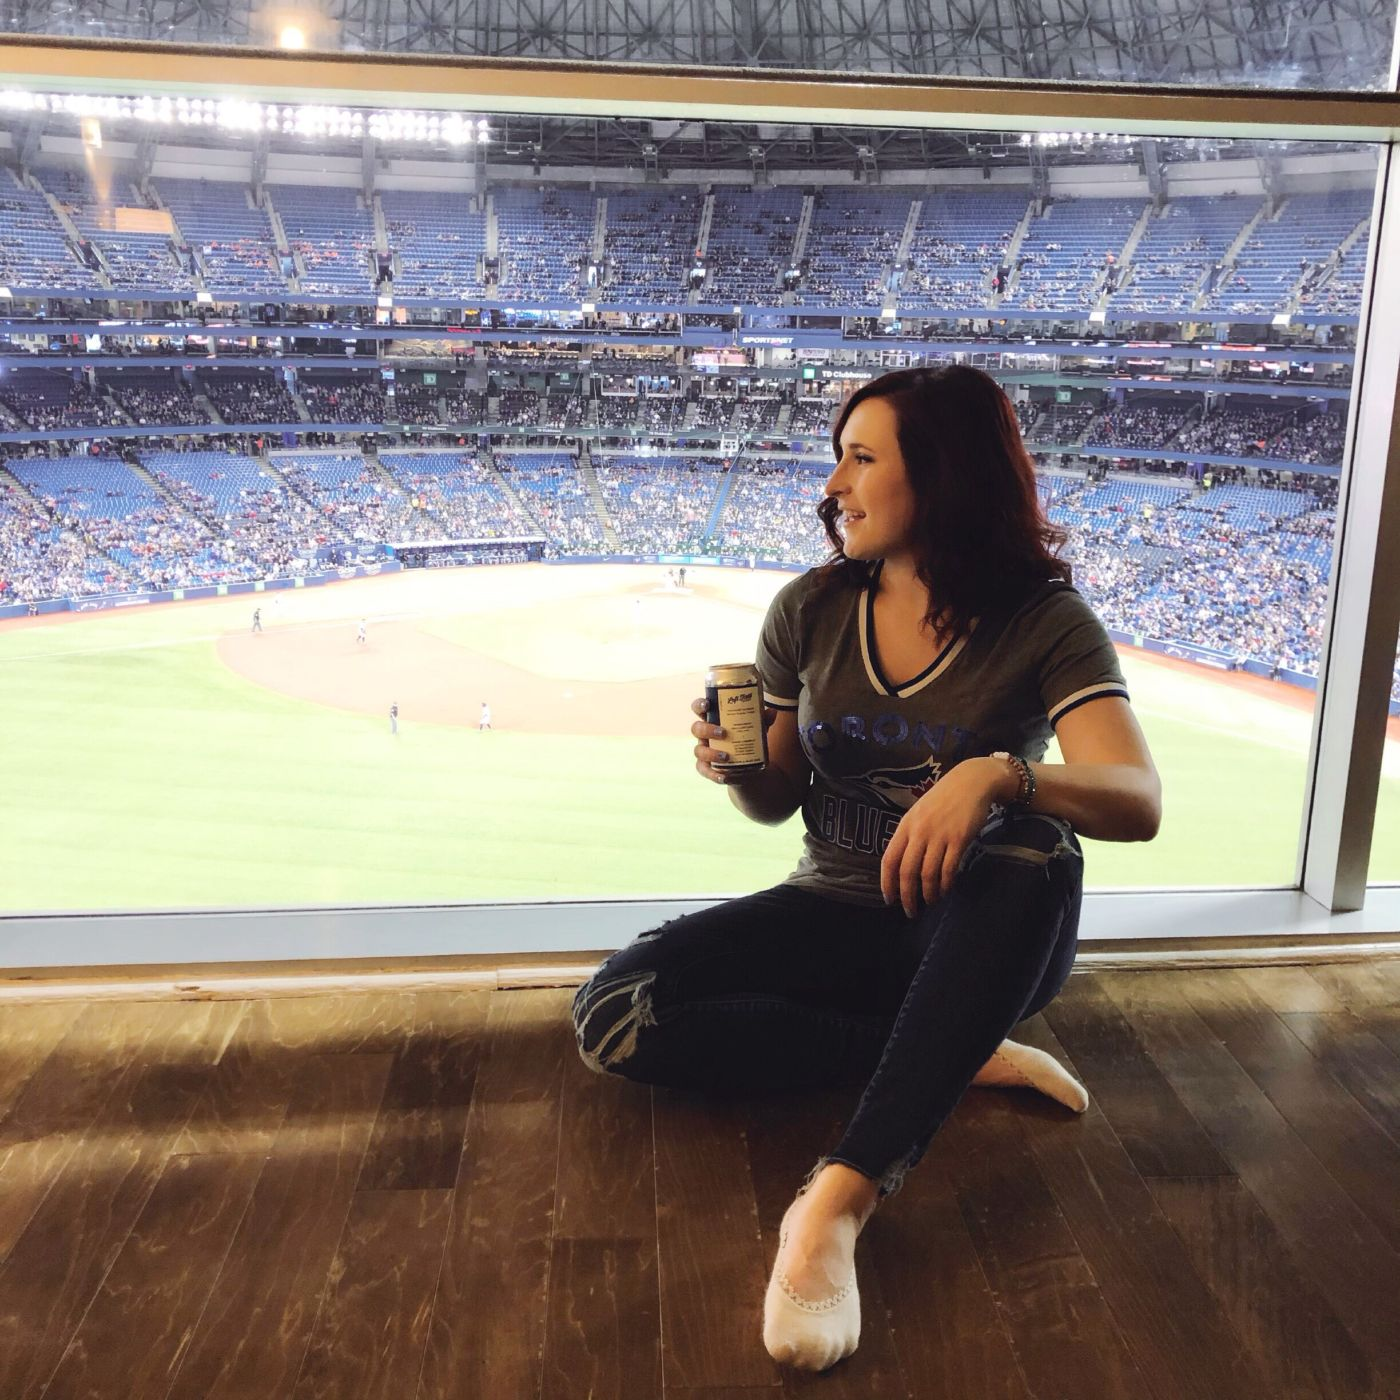 toronto marriott city centre, rogers centre hotel, blue jays hotel, where to stay in toronto, toronto blue jays game day, what to do before blue jays game, toronto sports, toronto tourism, best toronto hotels, hotel to watch the baseball game